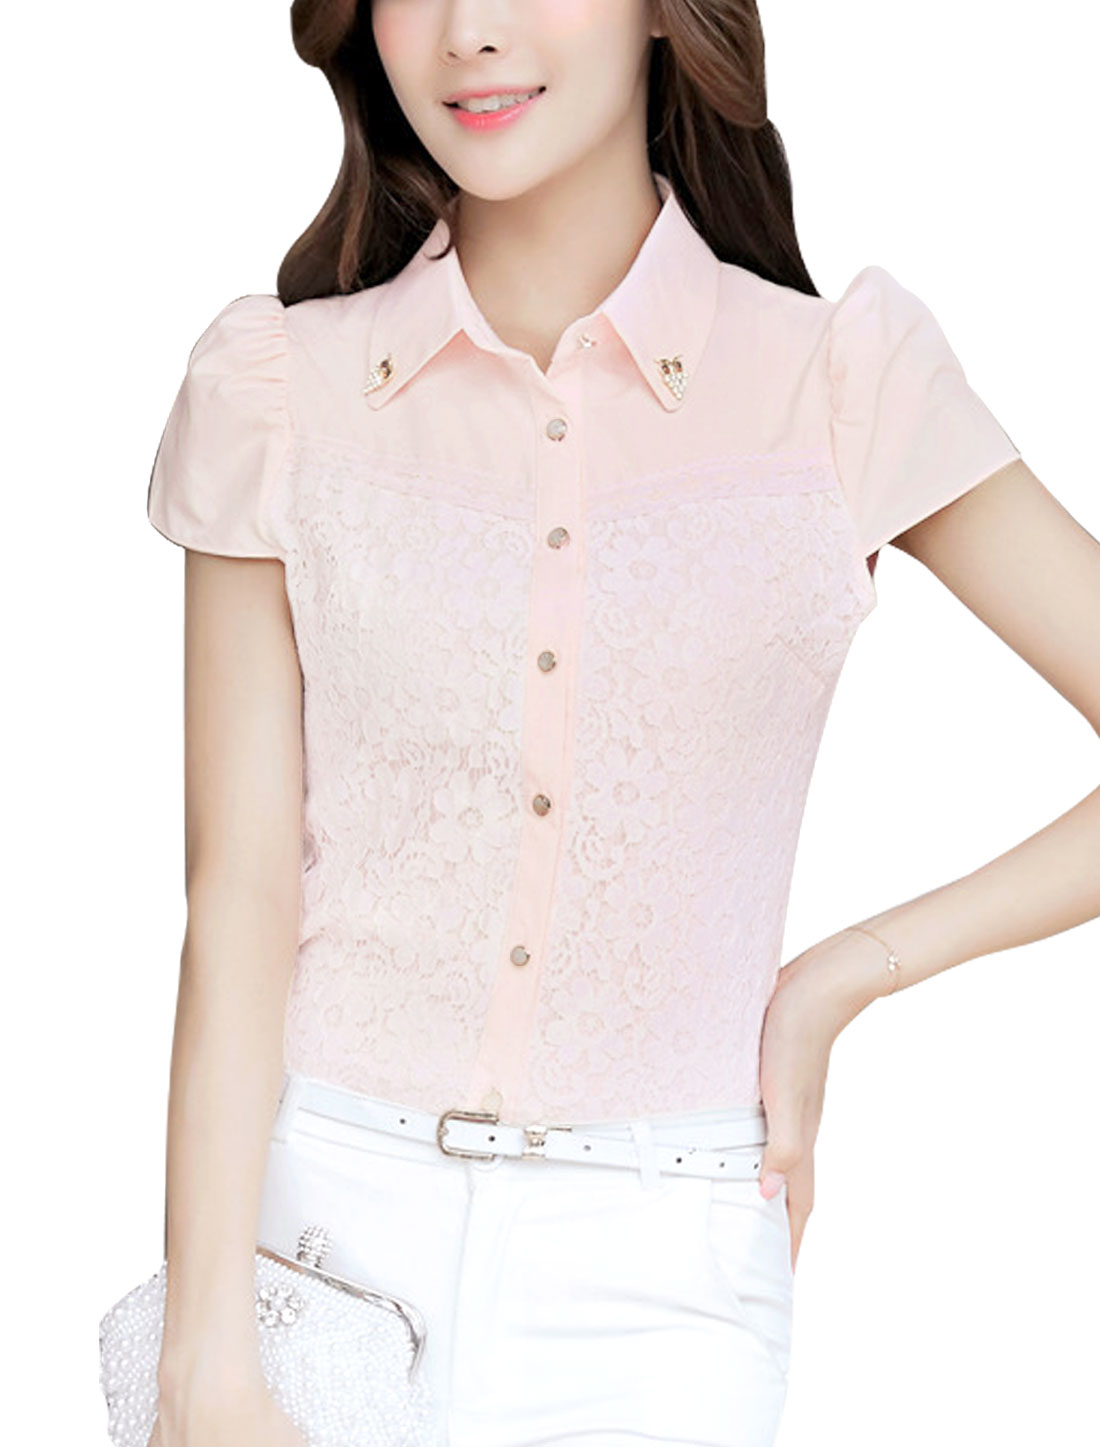 Lady Lace Panel Shirt w Removable Rhinestones Decor Pink L